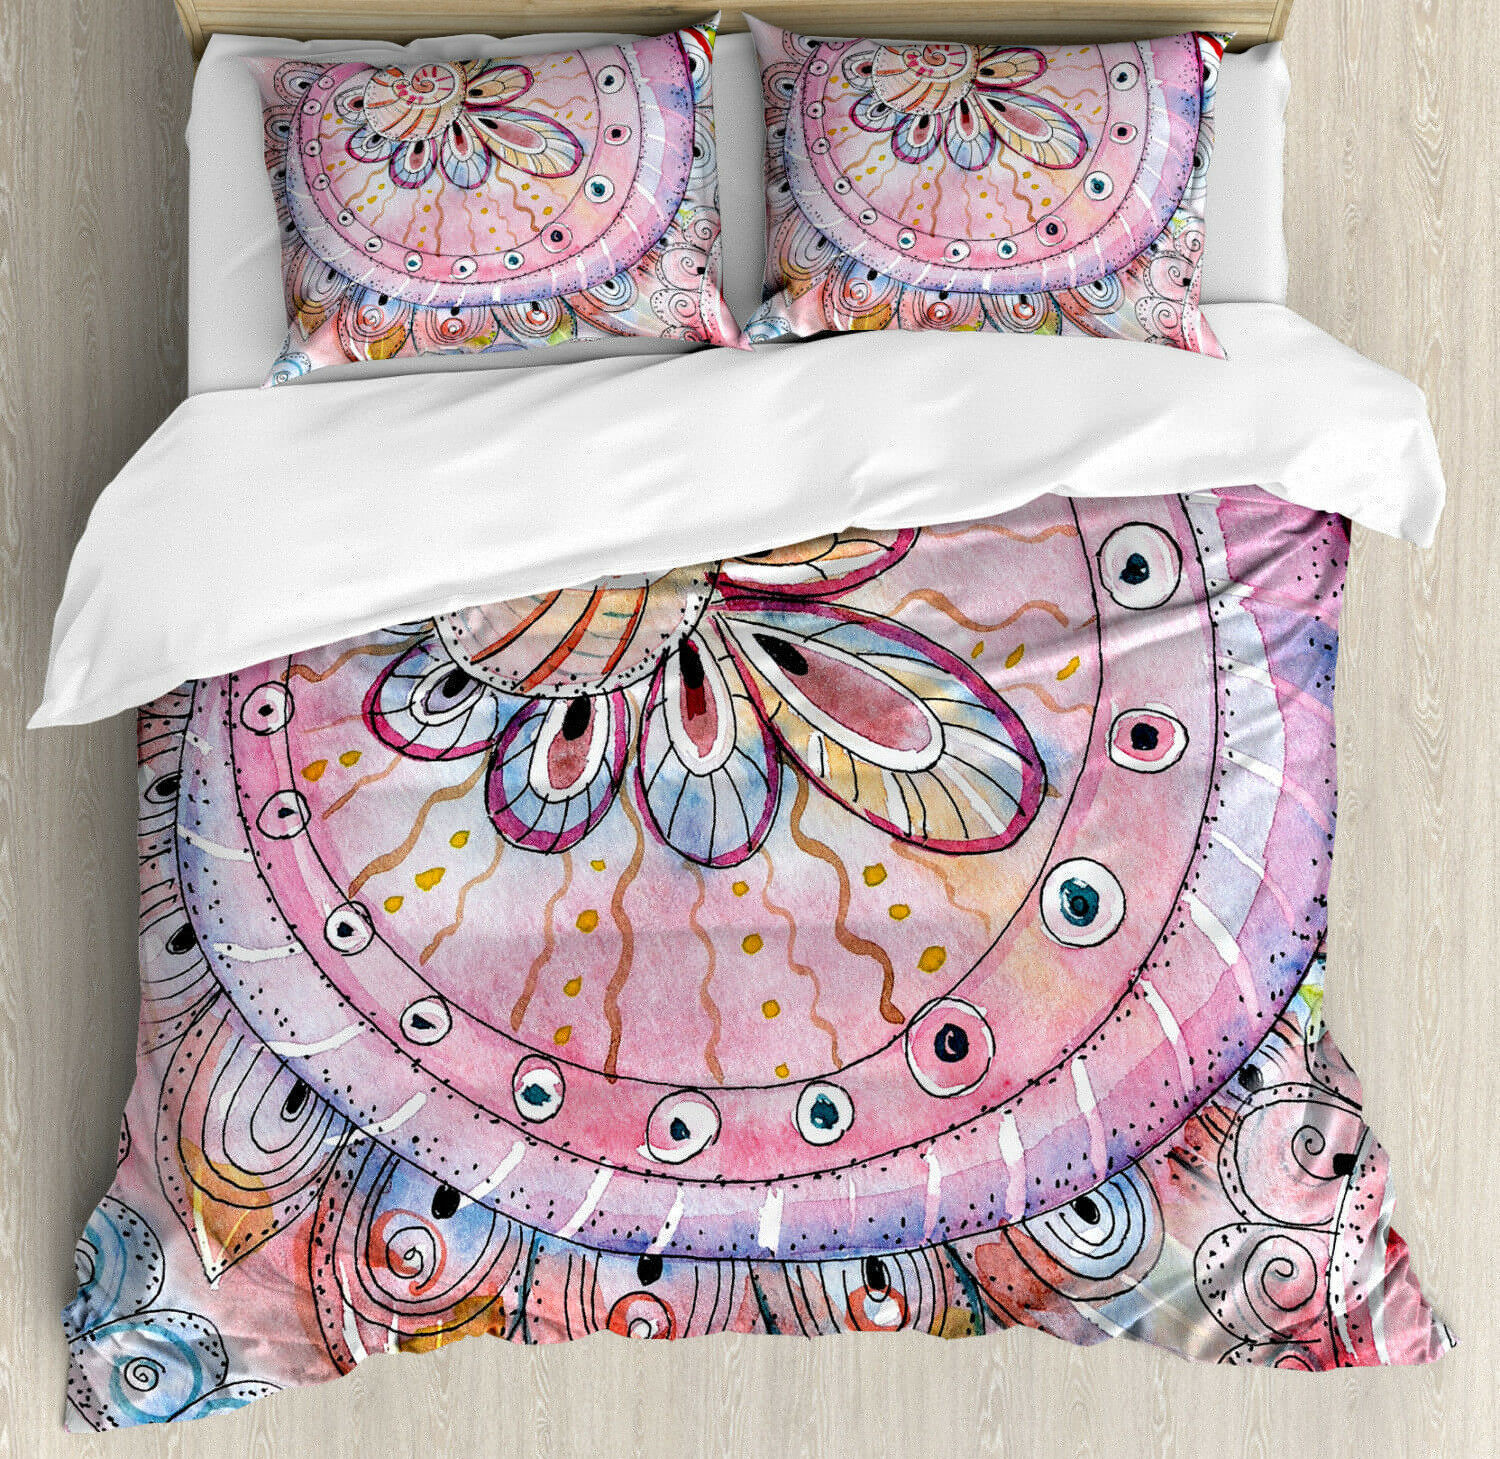 Eastern Duvet Cover Set with Pillow Shams WaterColoreee Effects Art Print